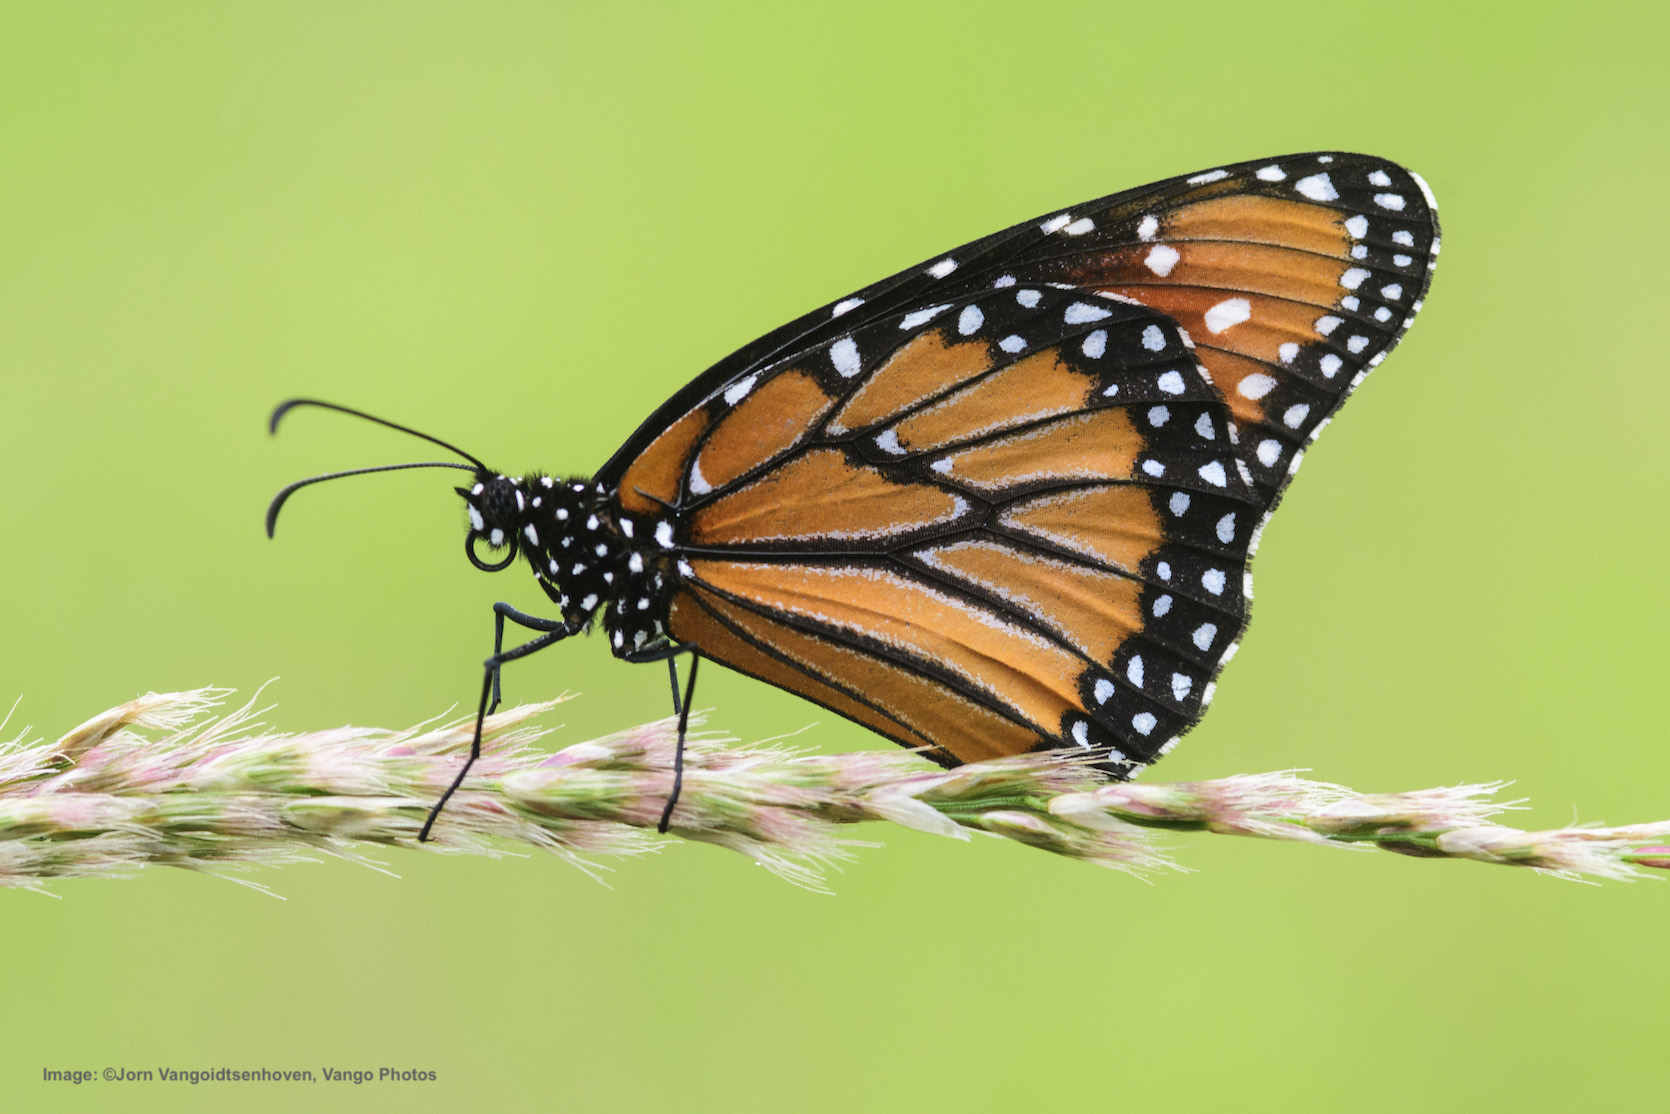 AMISTAD NATIONAL RECREATION AREA IS MY FAVORITE PLACE TO SEE BUTTERFLIES IN TEXAS. THIS IS ALSO A MONARCH LOOK-ALIKE. SEE THE CHART BELOW. CAN YOU IDENTIFY IT? IMAGE: Image: ©Jorn Vangoidtsenhoven, Vango Photos